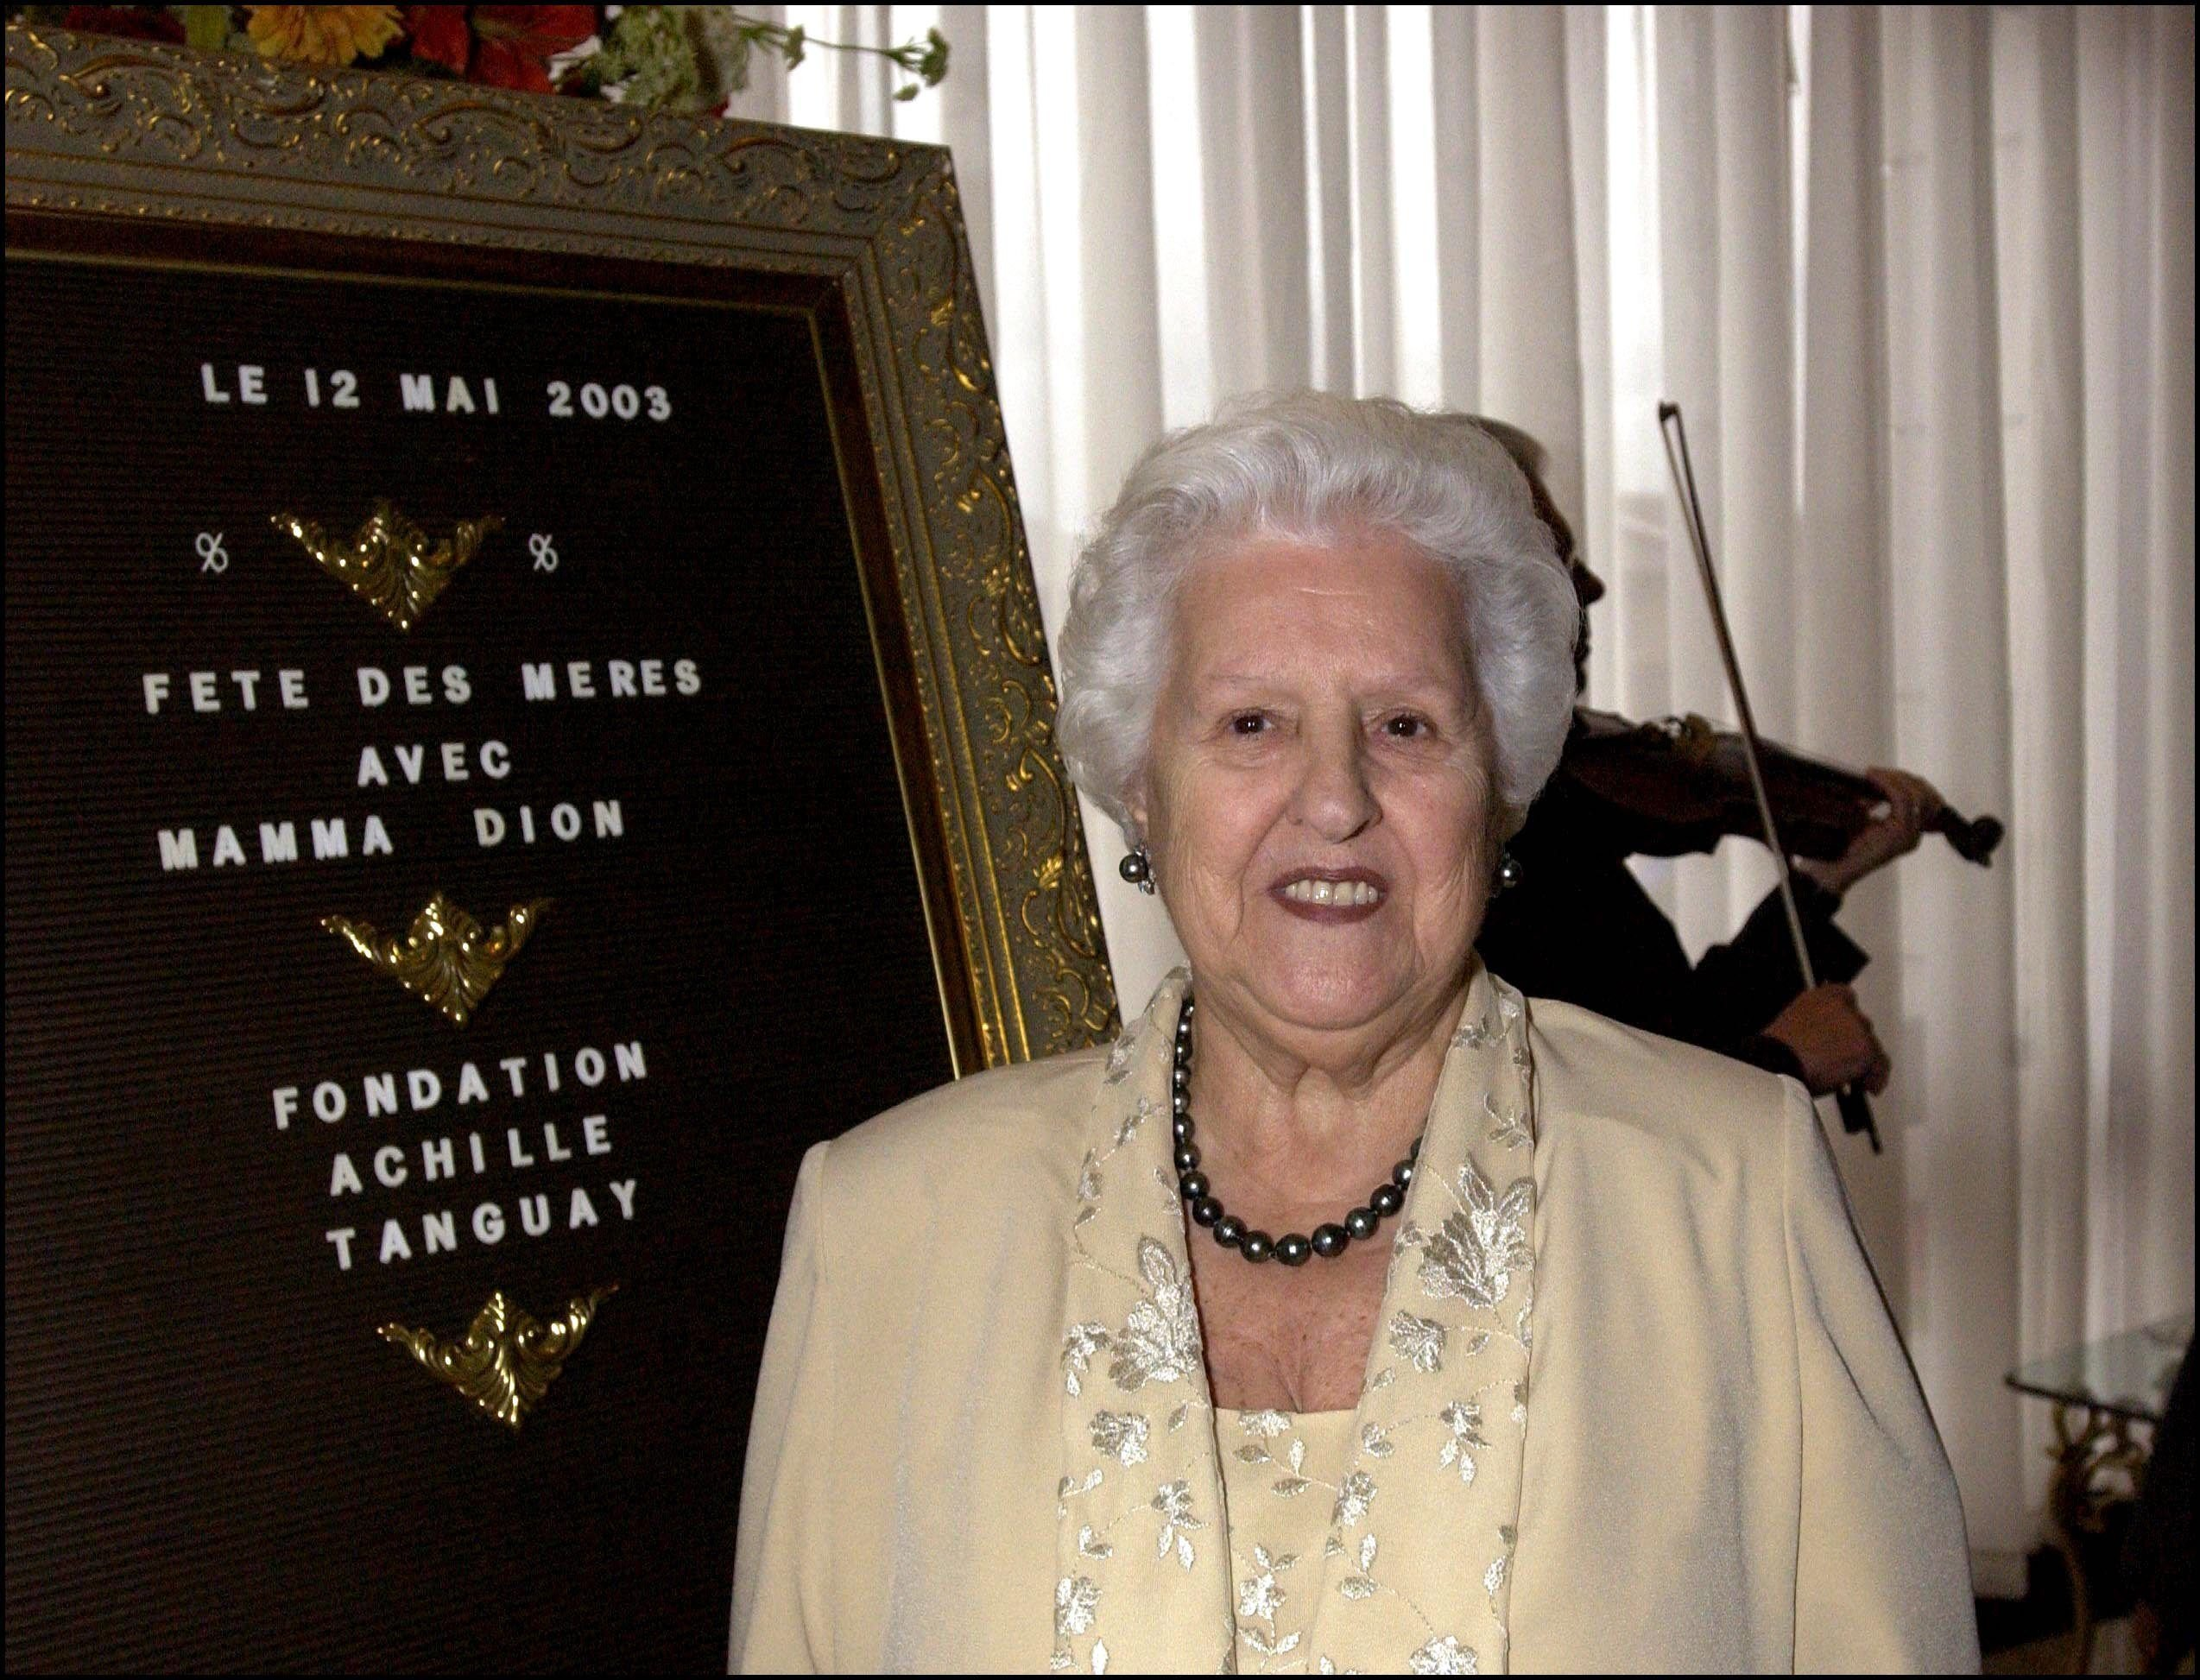 Celine Dion's mother Therese attends a benefit in Canada in 2003   Source: Getty Images